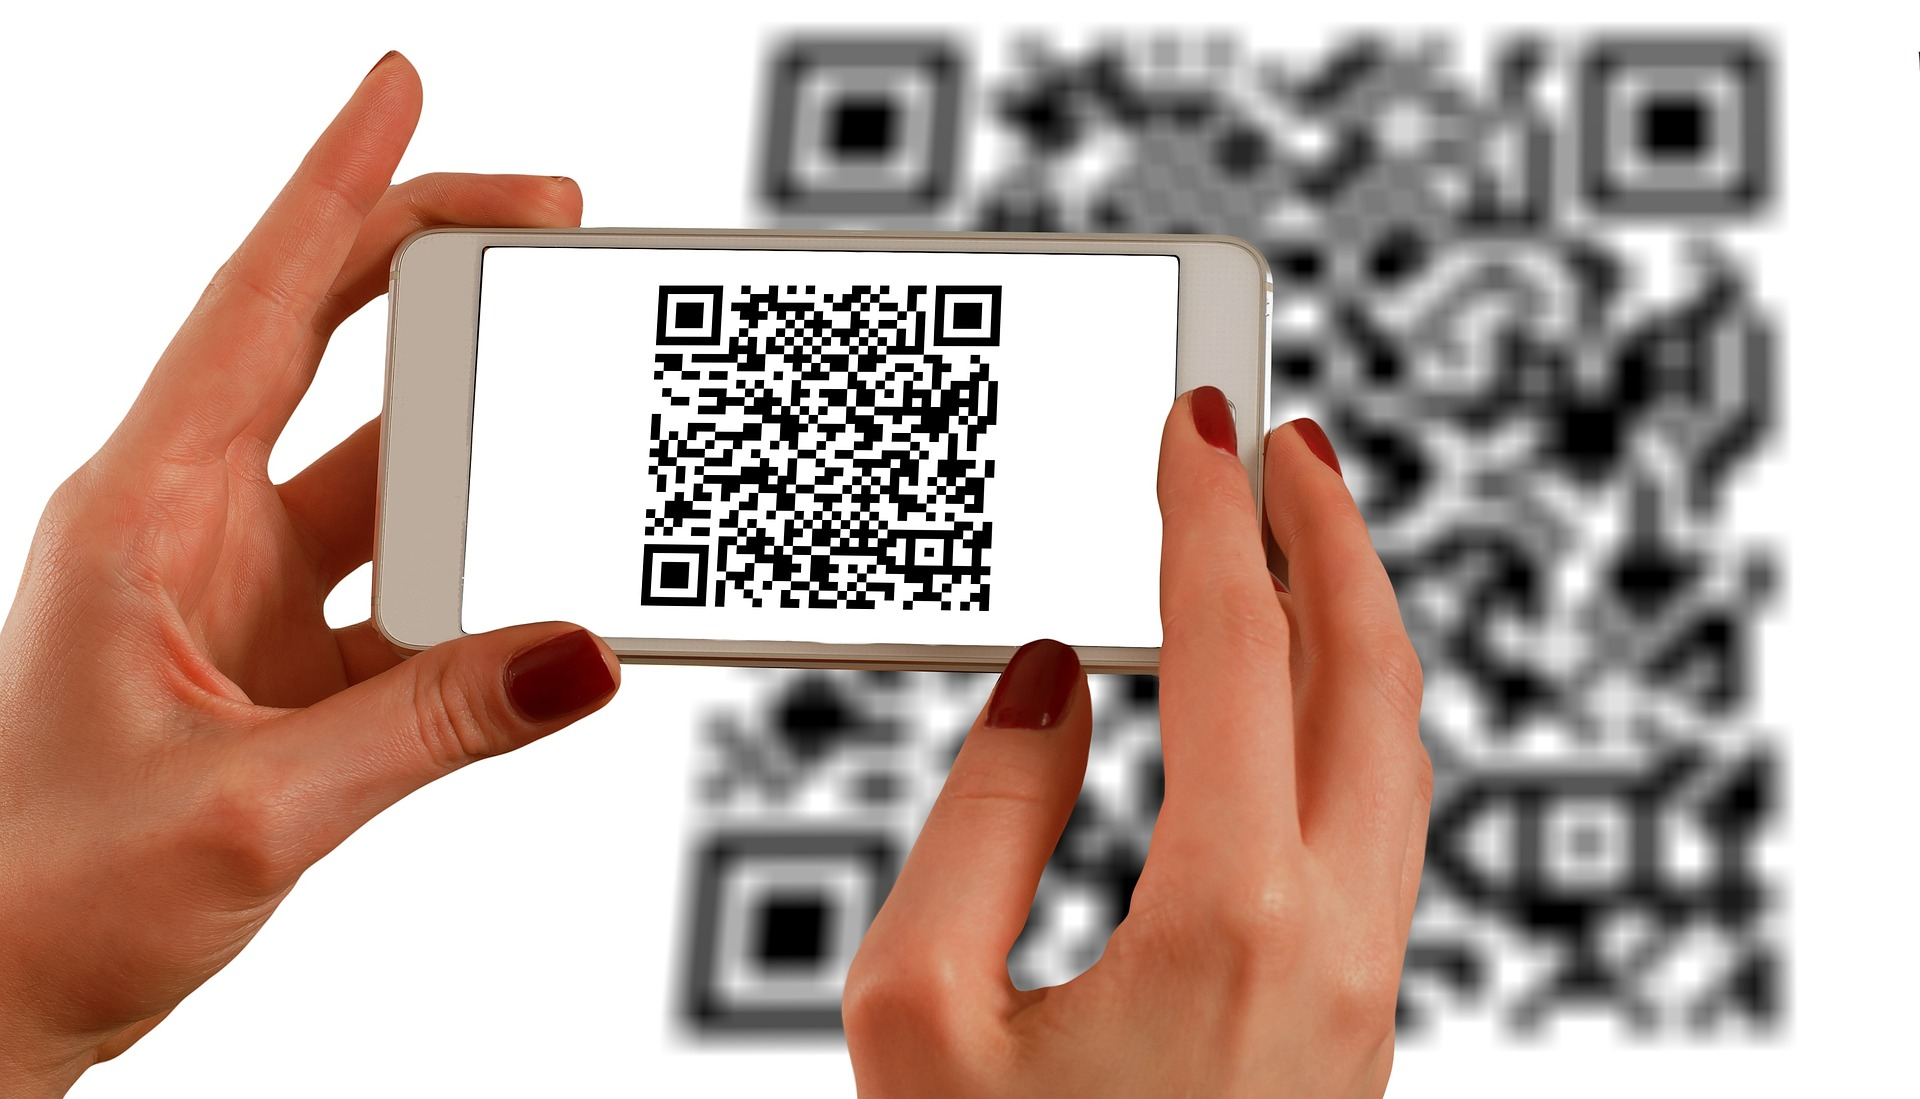 Second Largest Bank in Turkey Turns to QR Codes to Improve Business Transactions